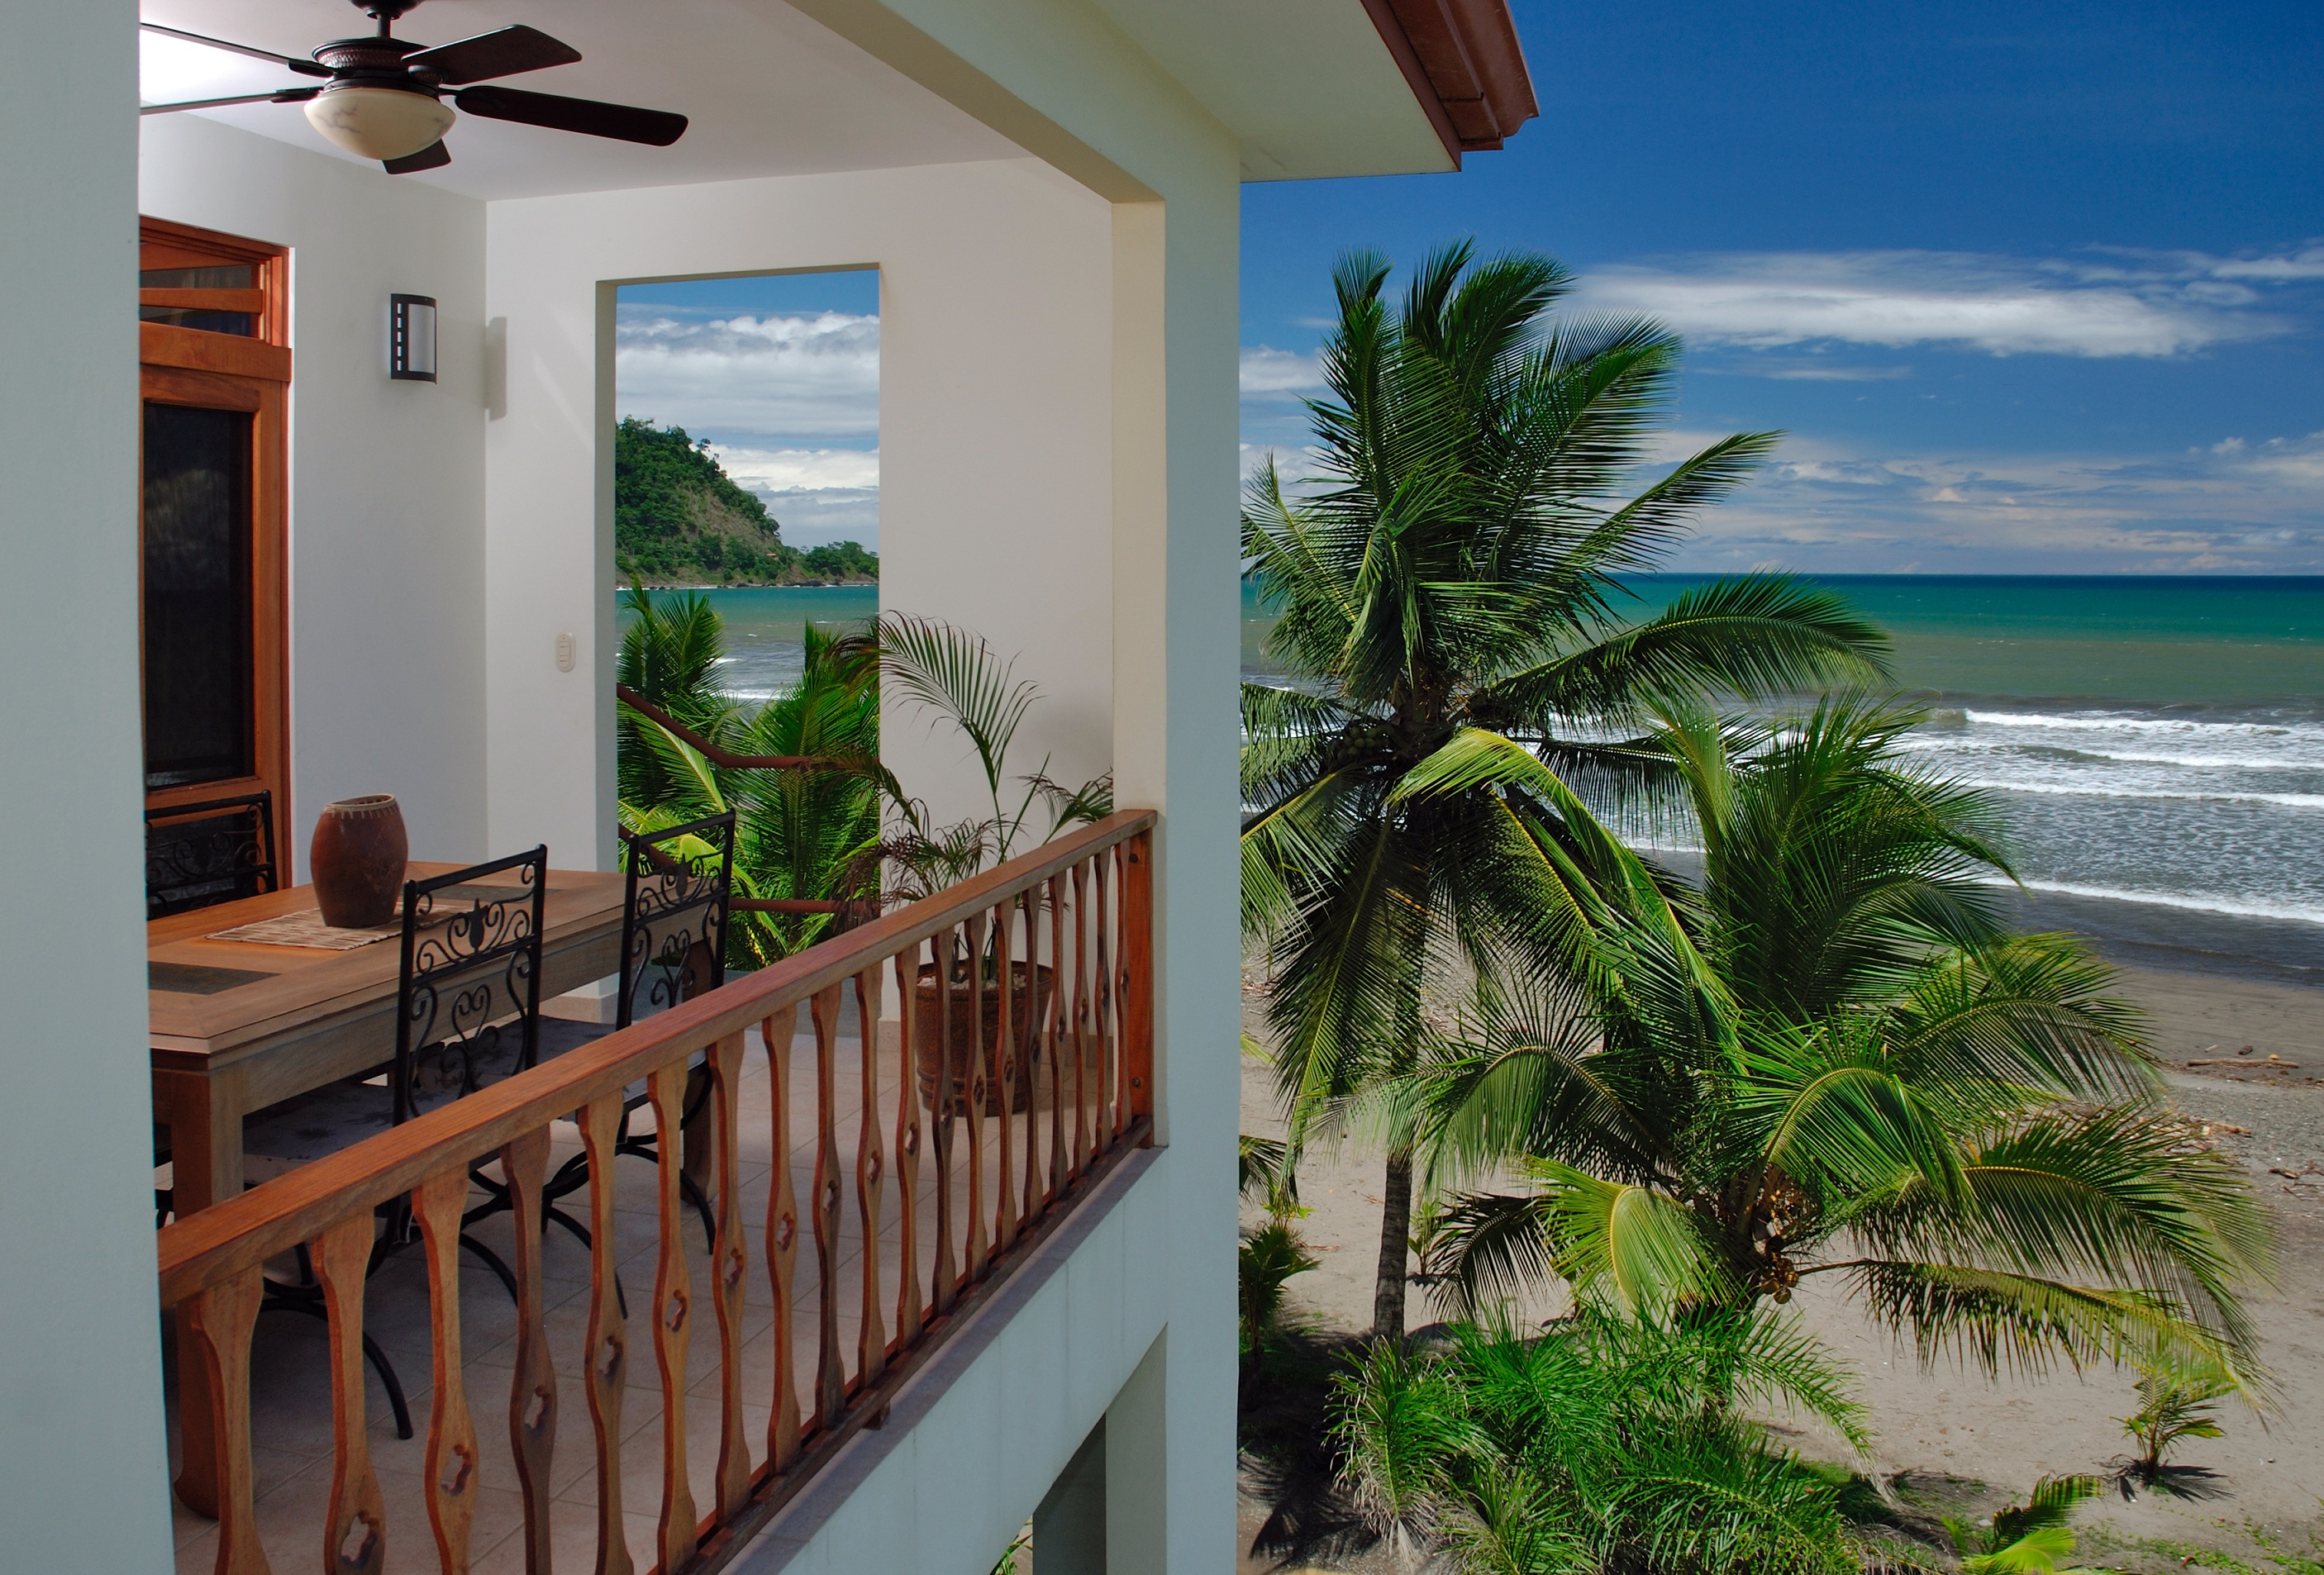 REMAX Jaco beach Costa Rica Real Estate